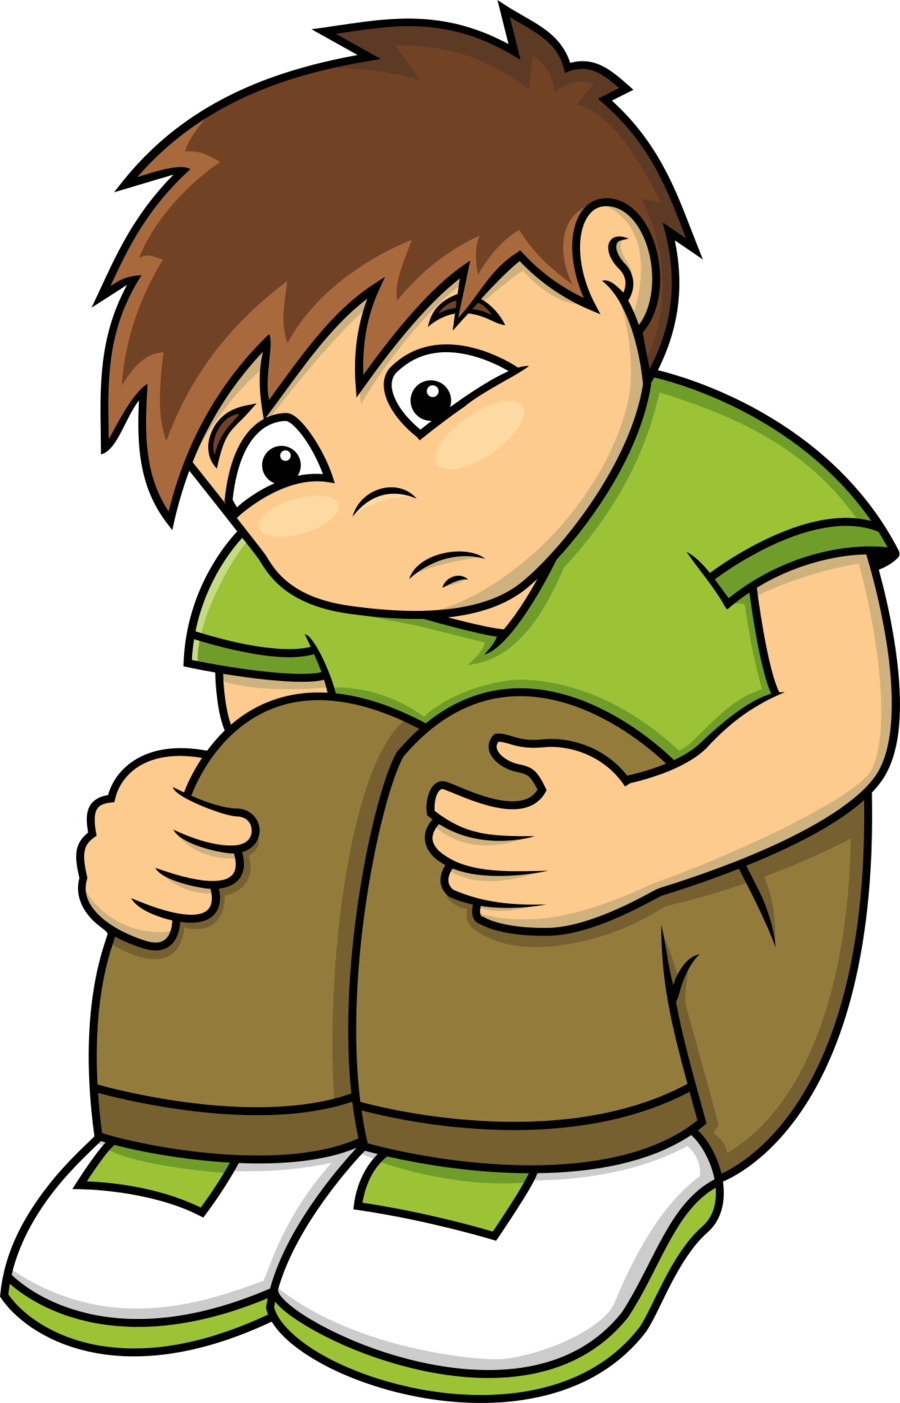 Child Cartoon clipart.